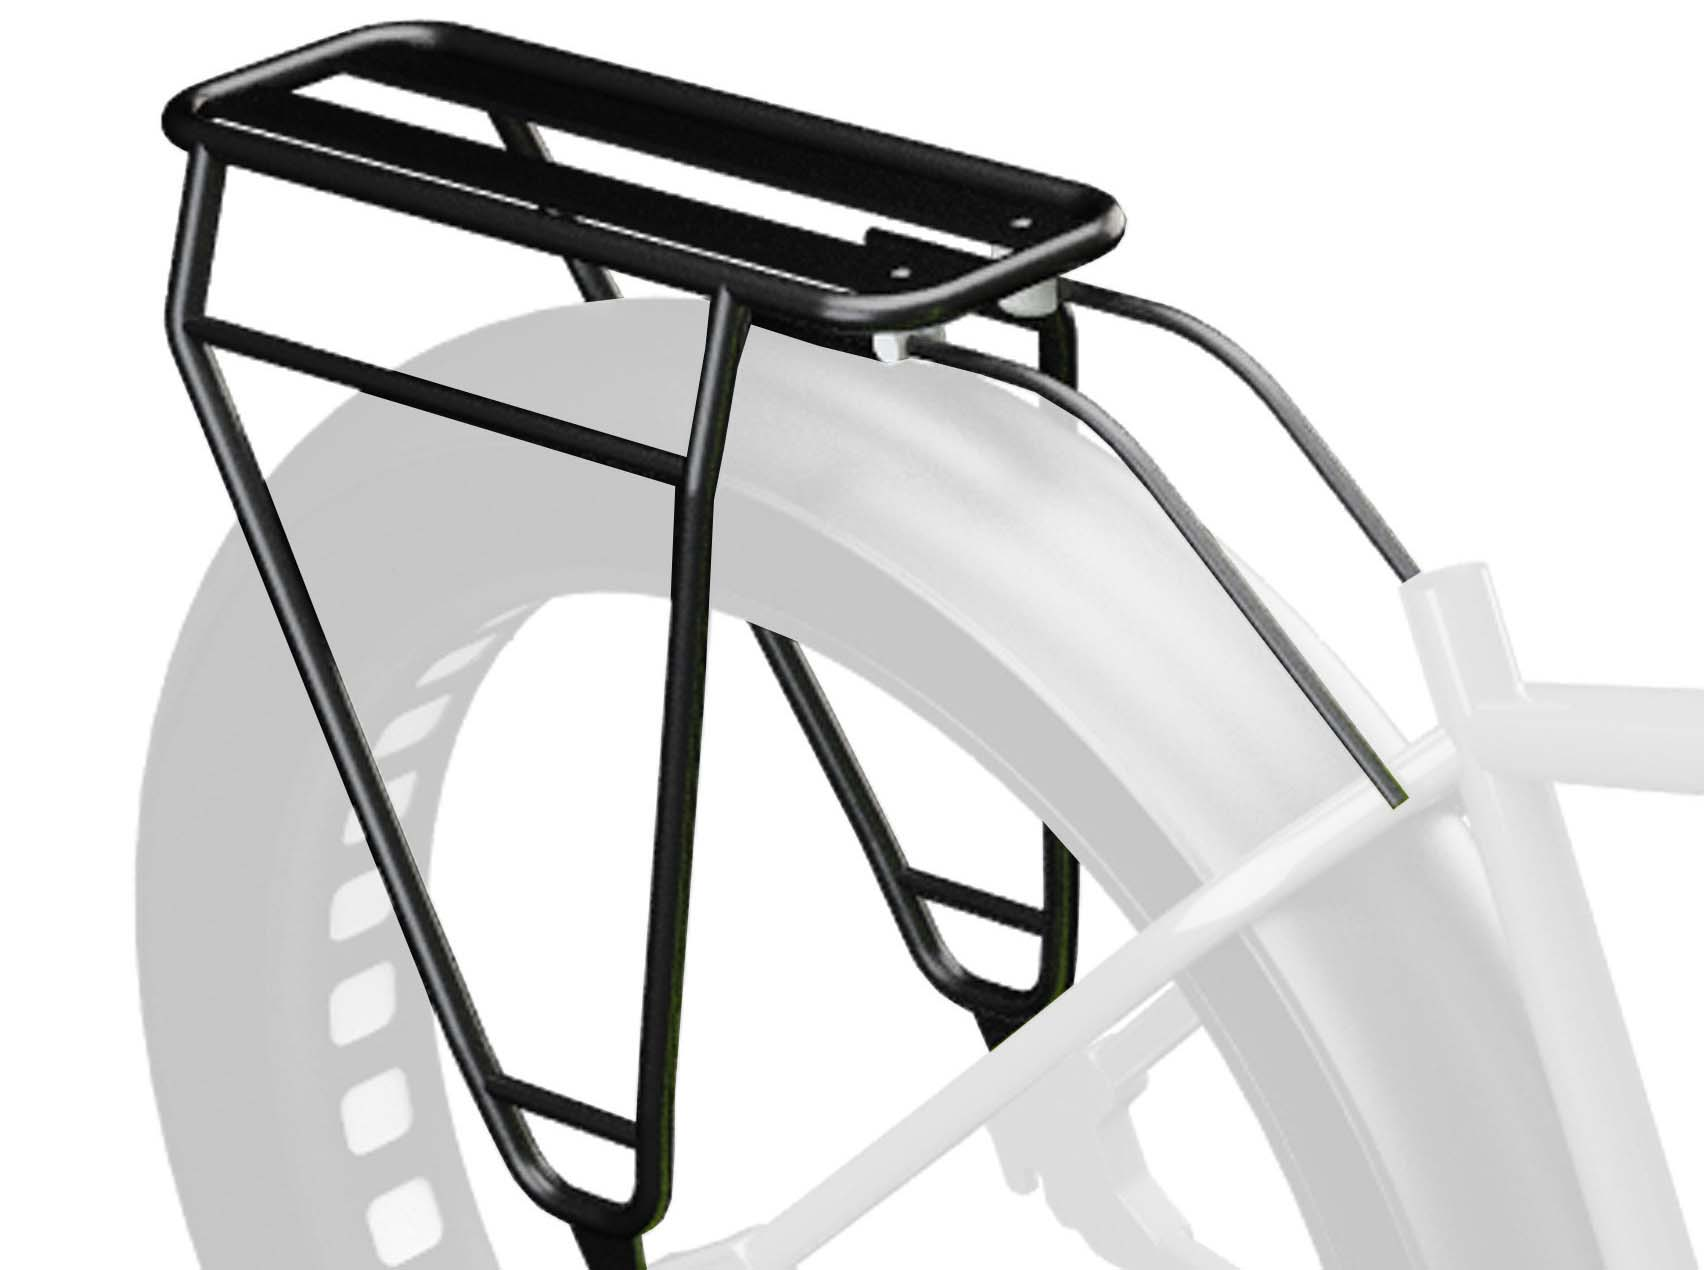 Rear Fatbike Rack by Surface 604 - Buy yours in Calgary at Power in Motion